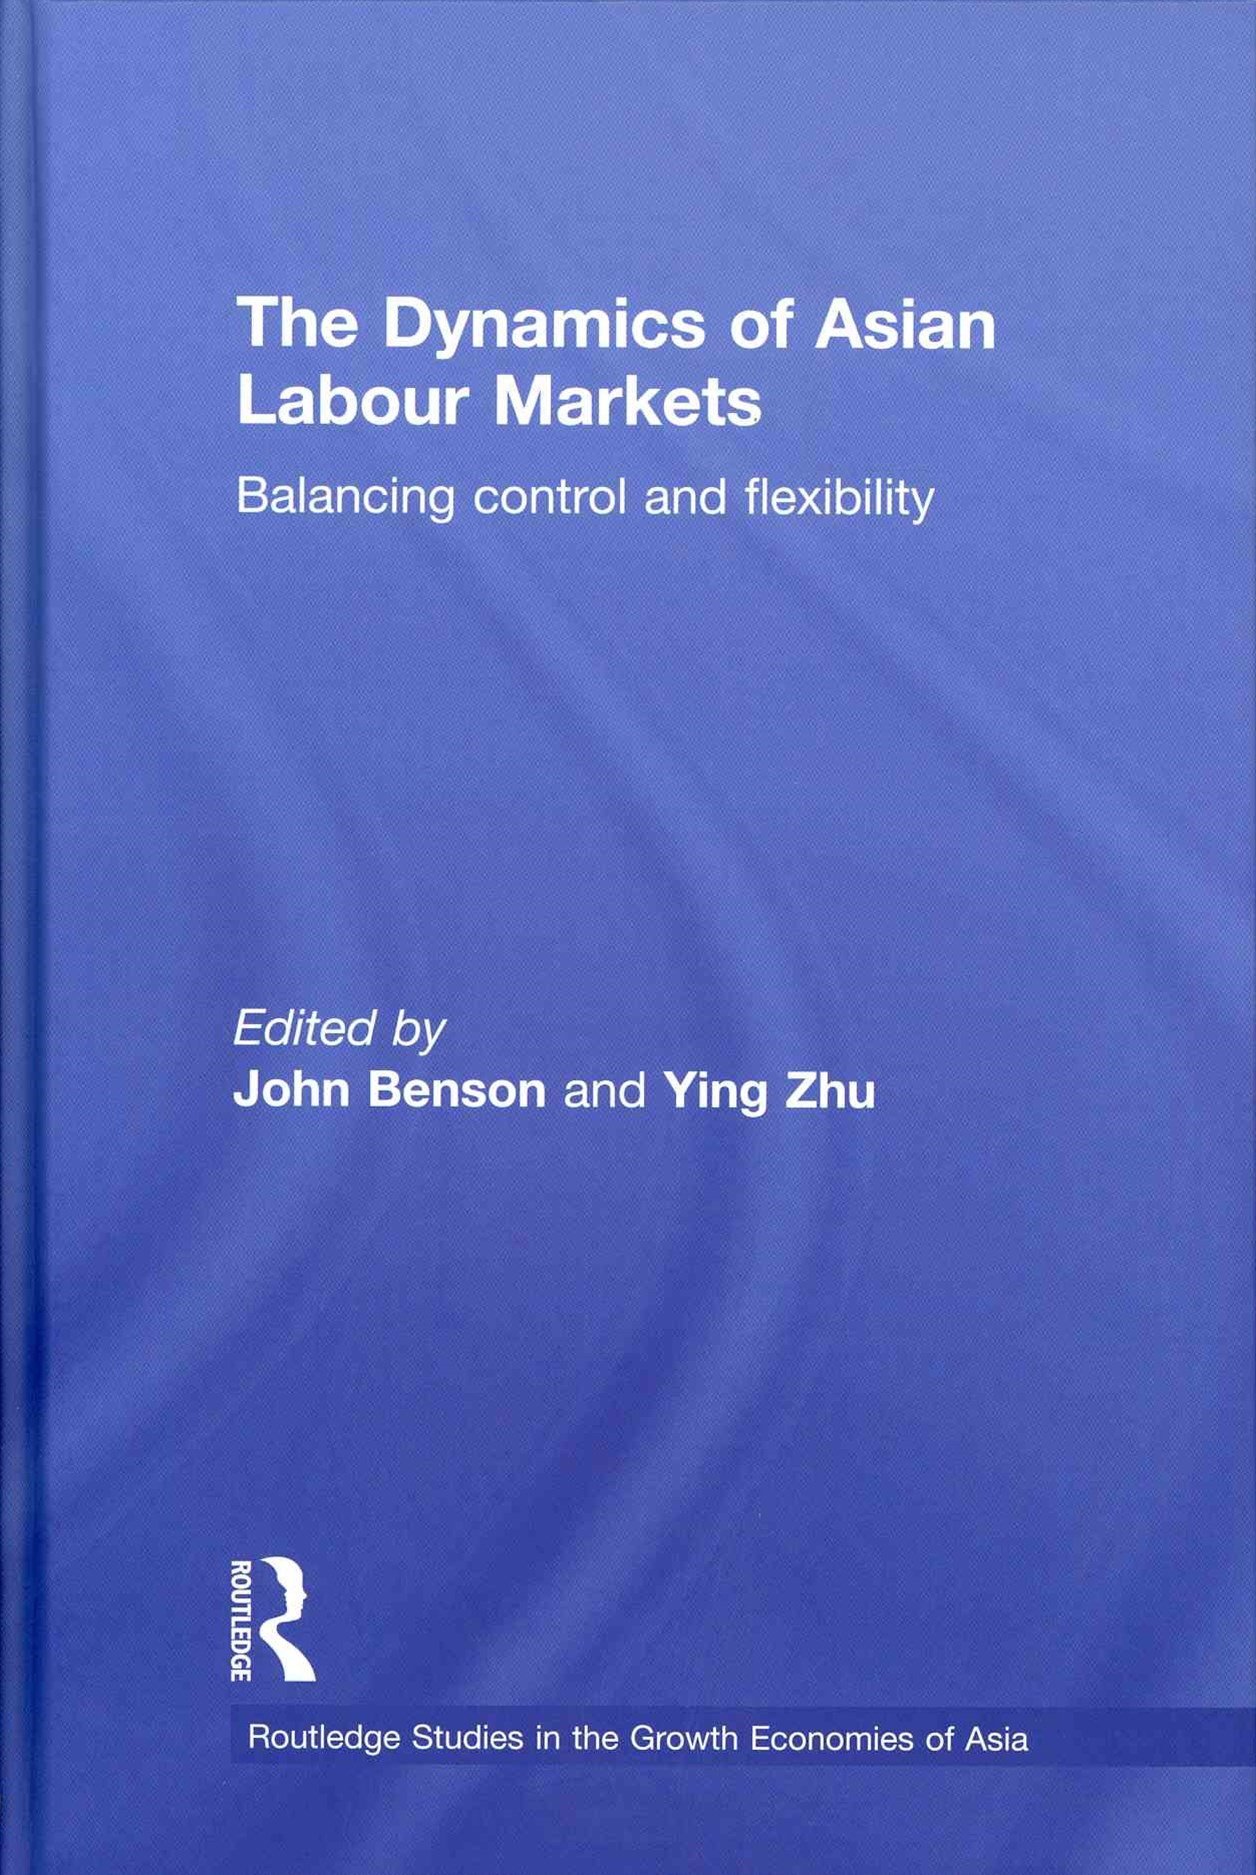 The Dynamics of Asian Labour Markets